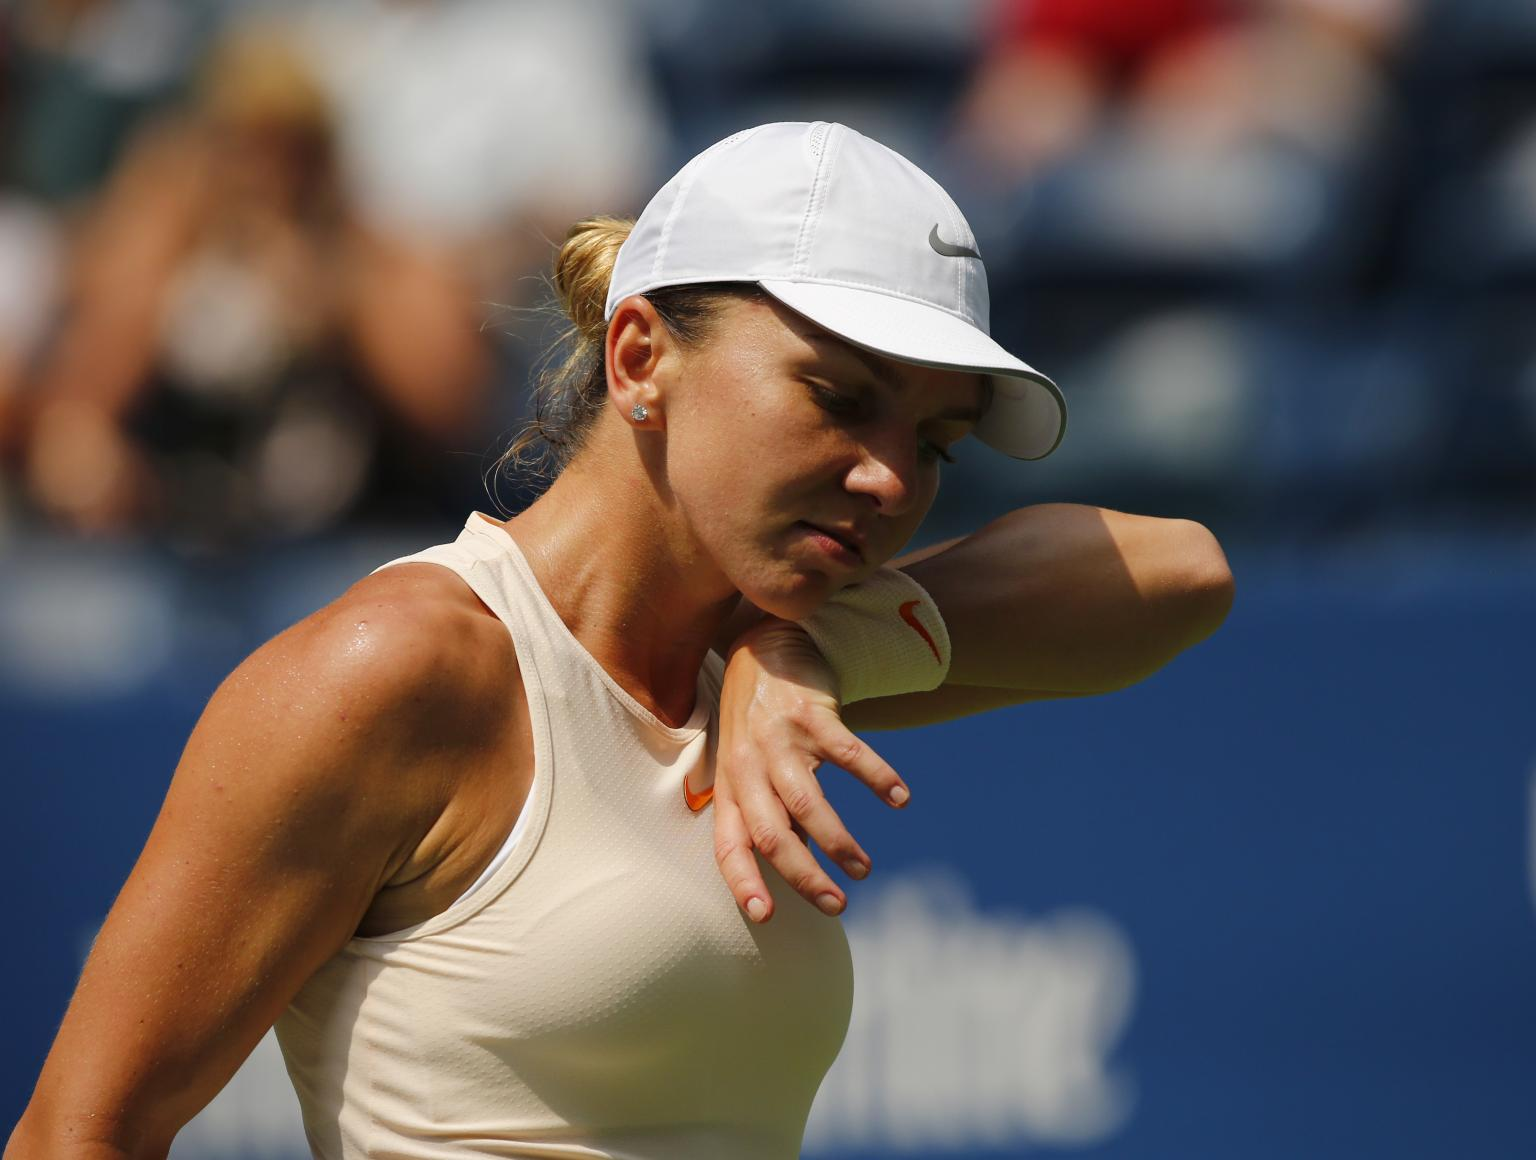 US OPEN: Halep becomes 1st No. 1 to lose 1st Open match; Serena wins